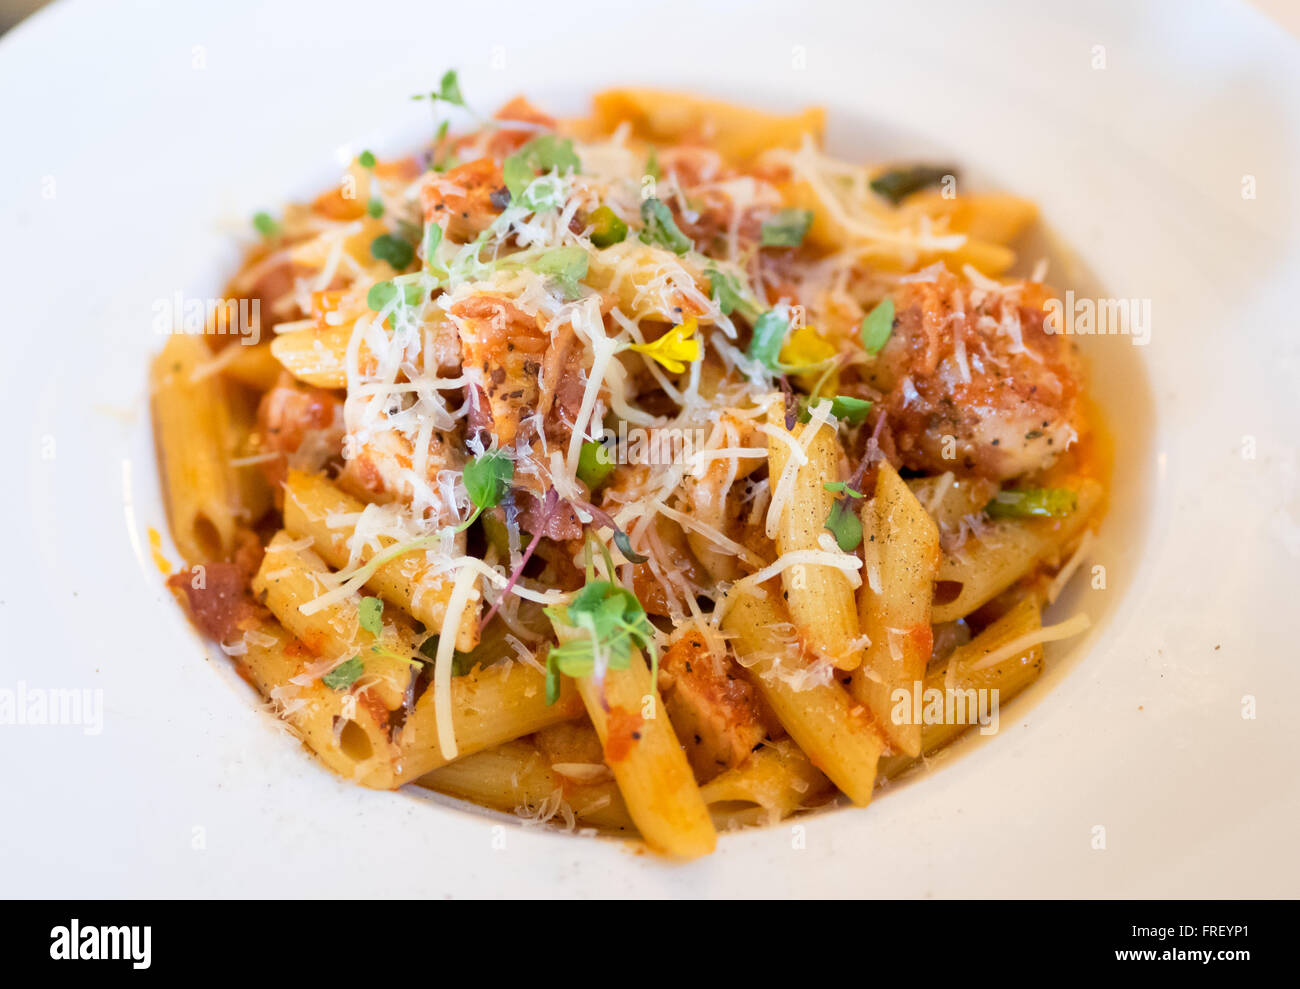 A plate of penne pollo (chicken) pasta in a tomato and red pepper sauce with Parmigiano Reggiano, boar bacon, and - Stock Image